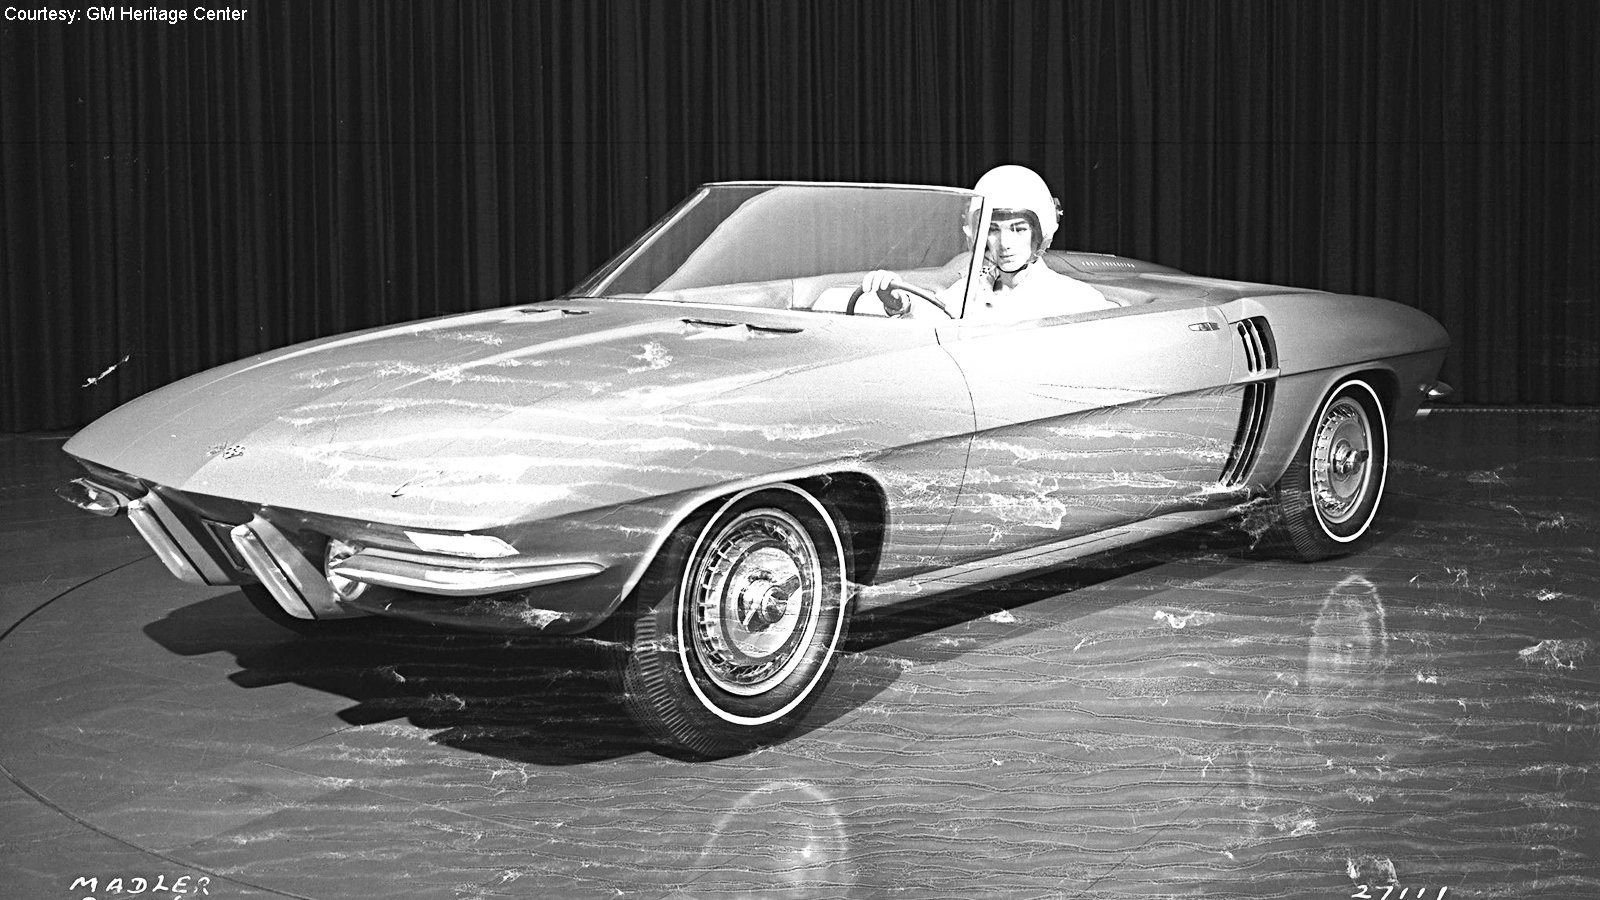 Once Upon a Time There Was a Corvette Rear-Engine Prototype